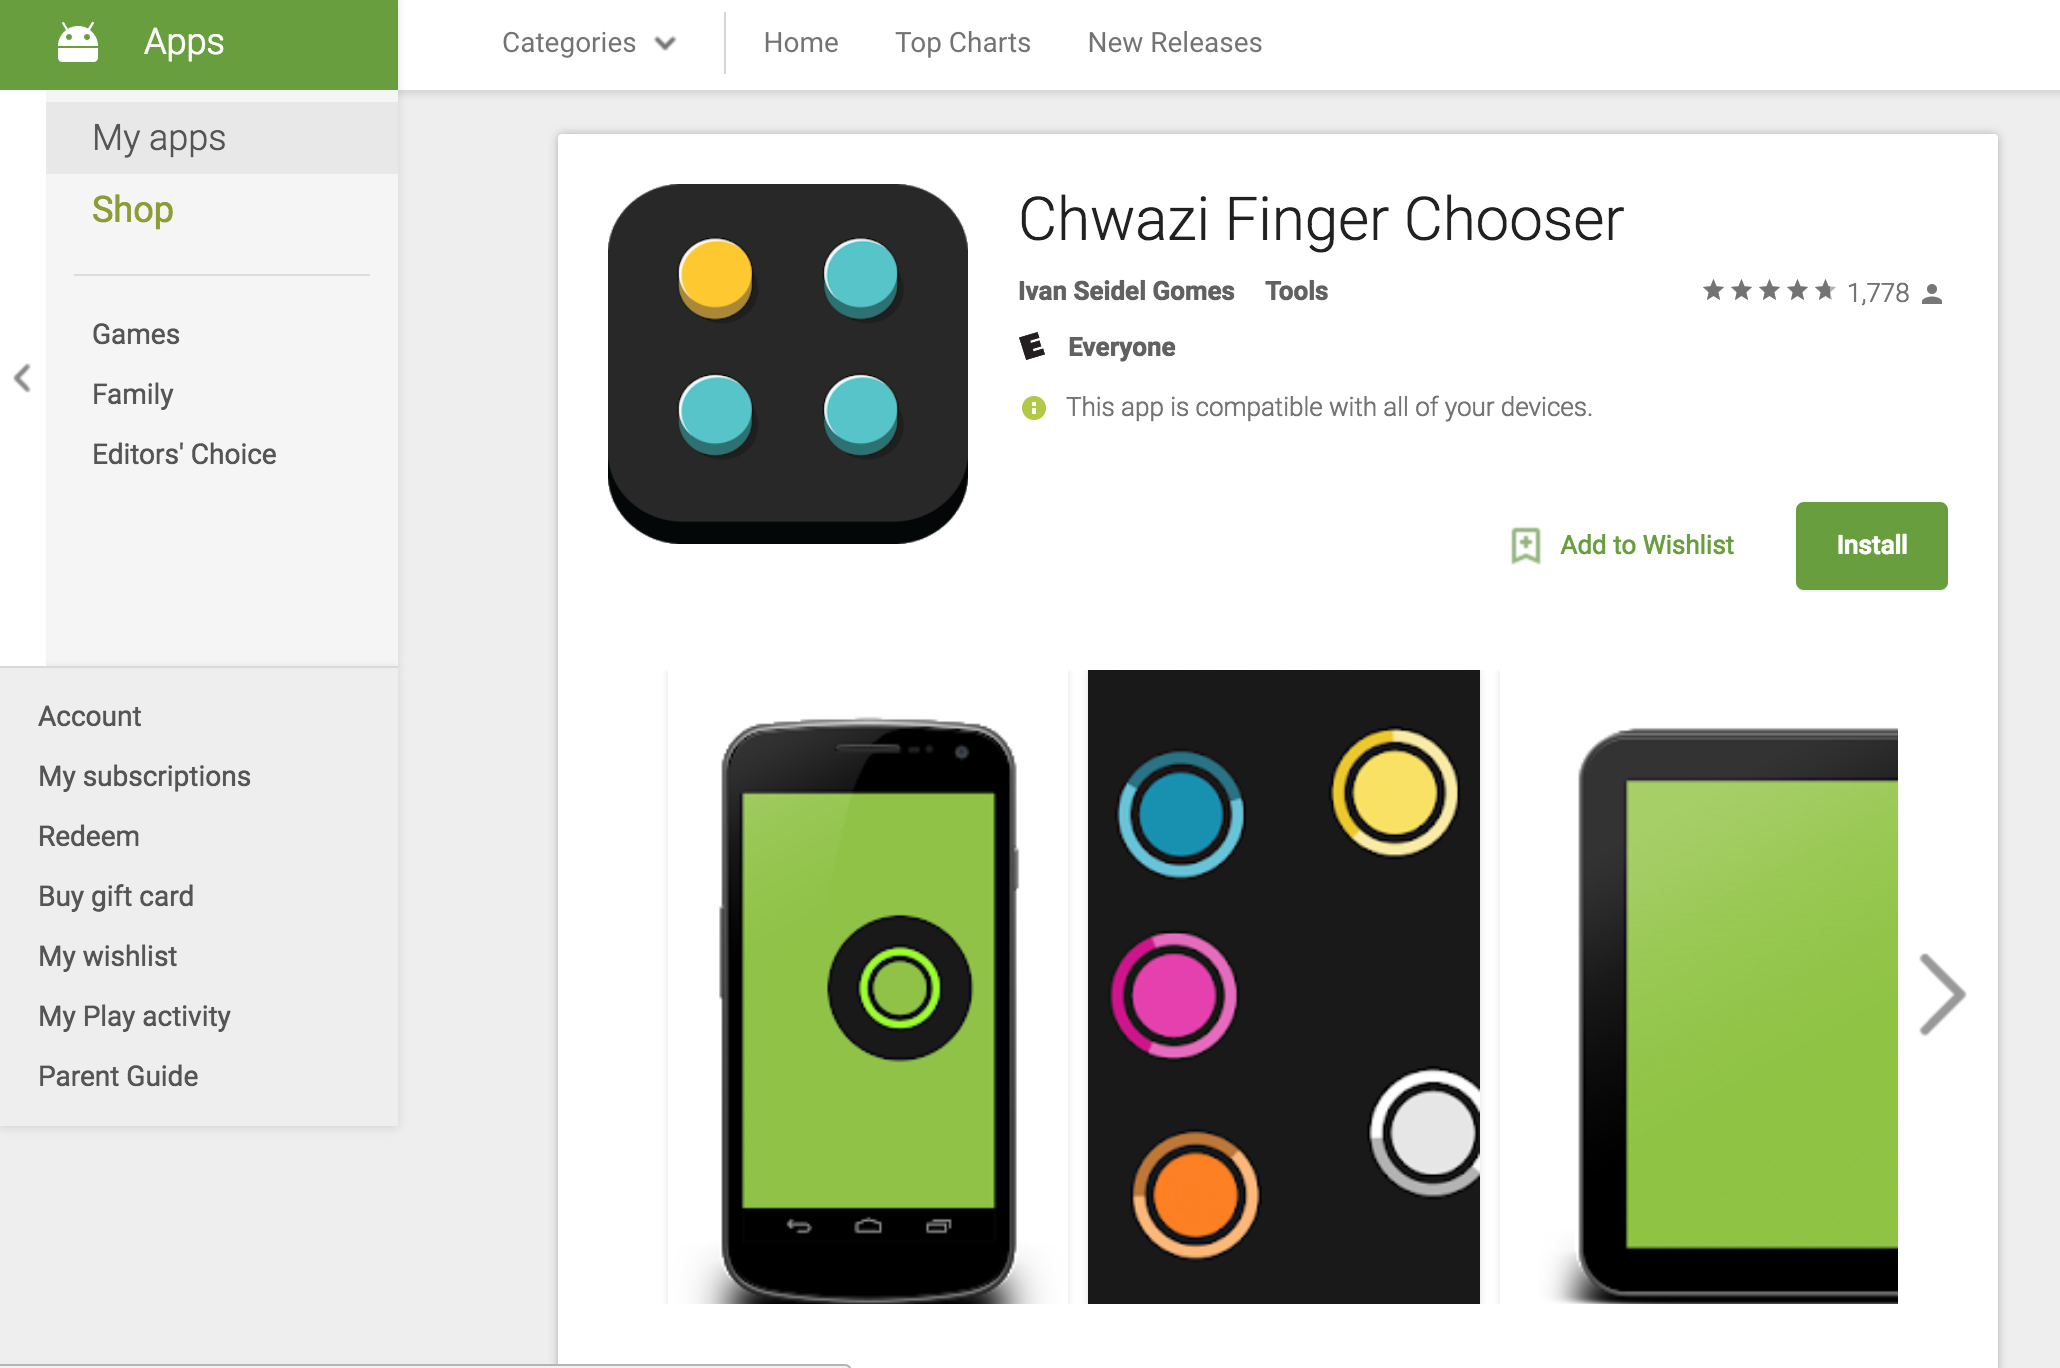 Chwazi Finger Chooser - This is the modern day version of